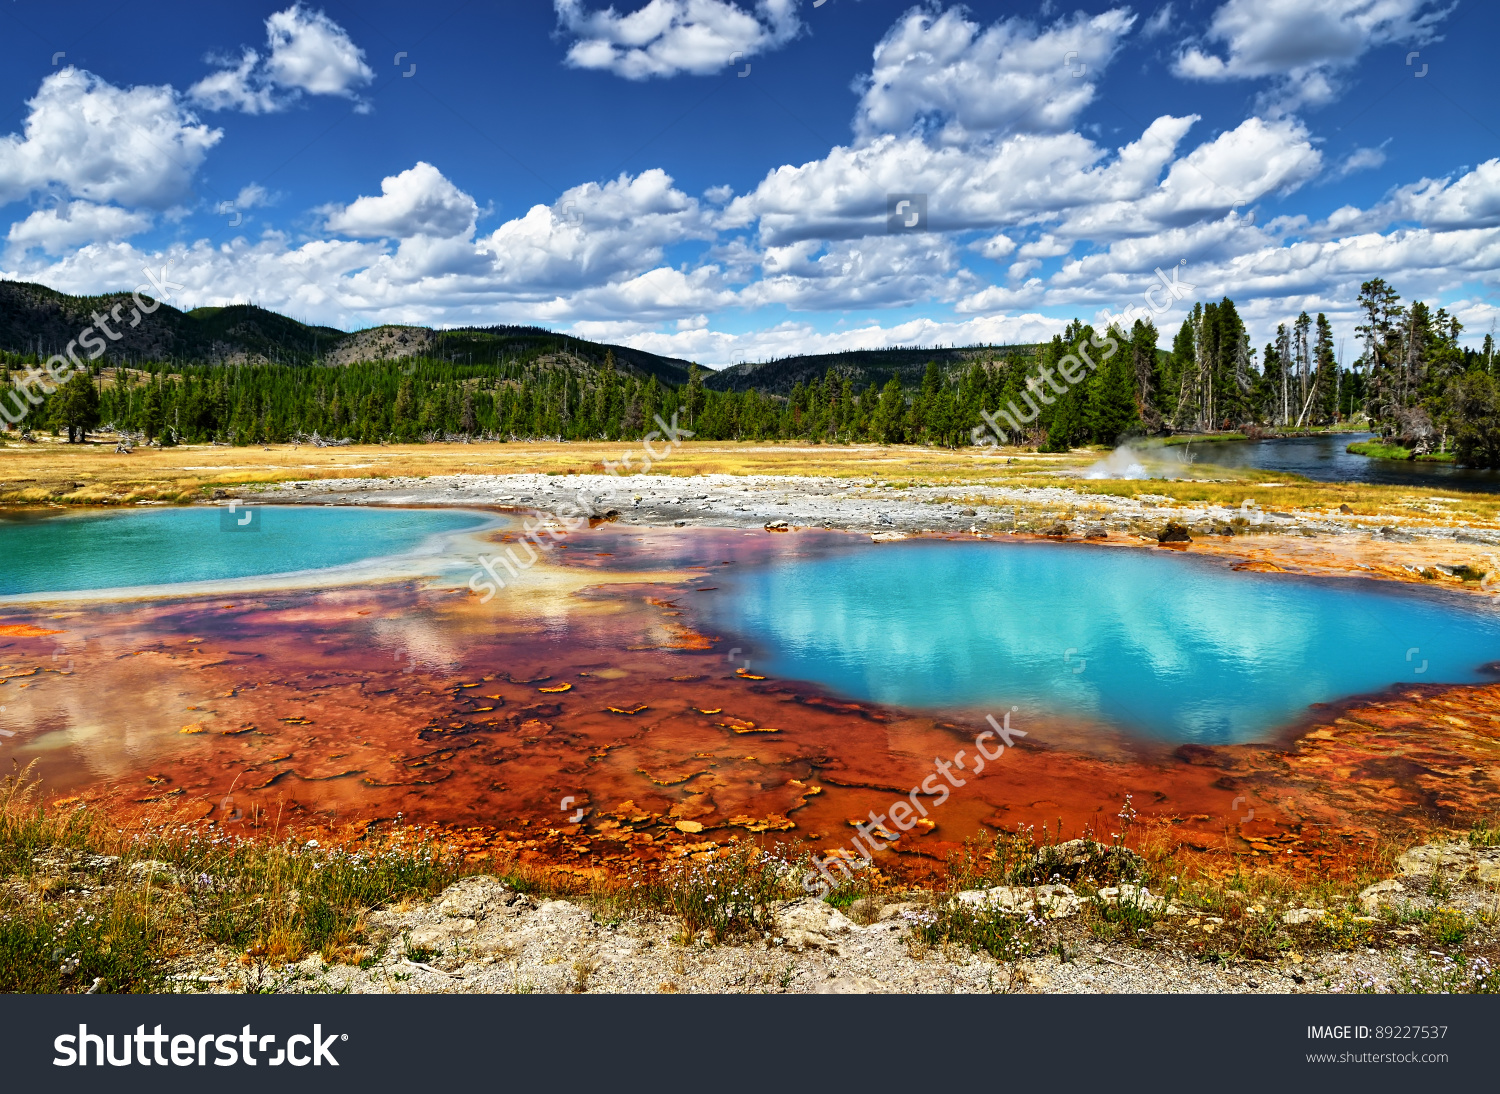 Black Opal Pool In Biscuit Basin, Yellowstone Stock Photo 89227537.